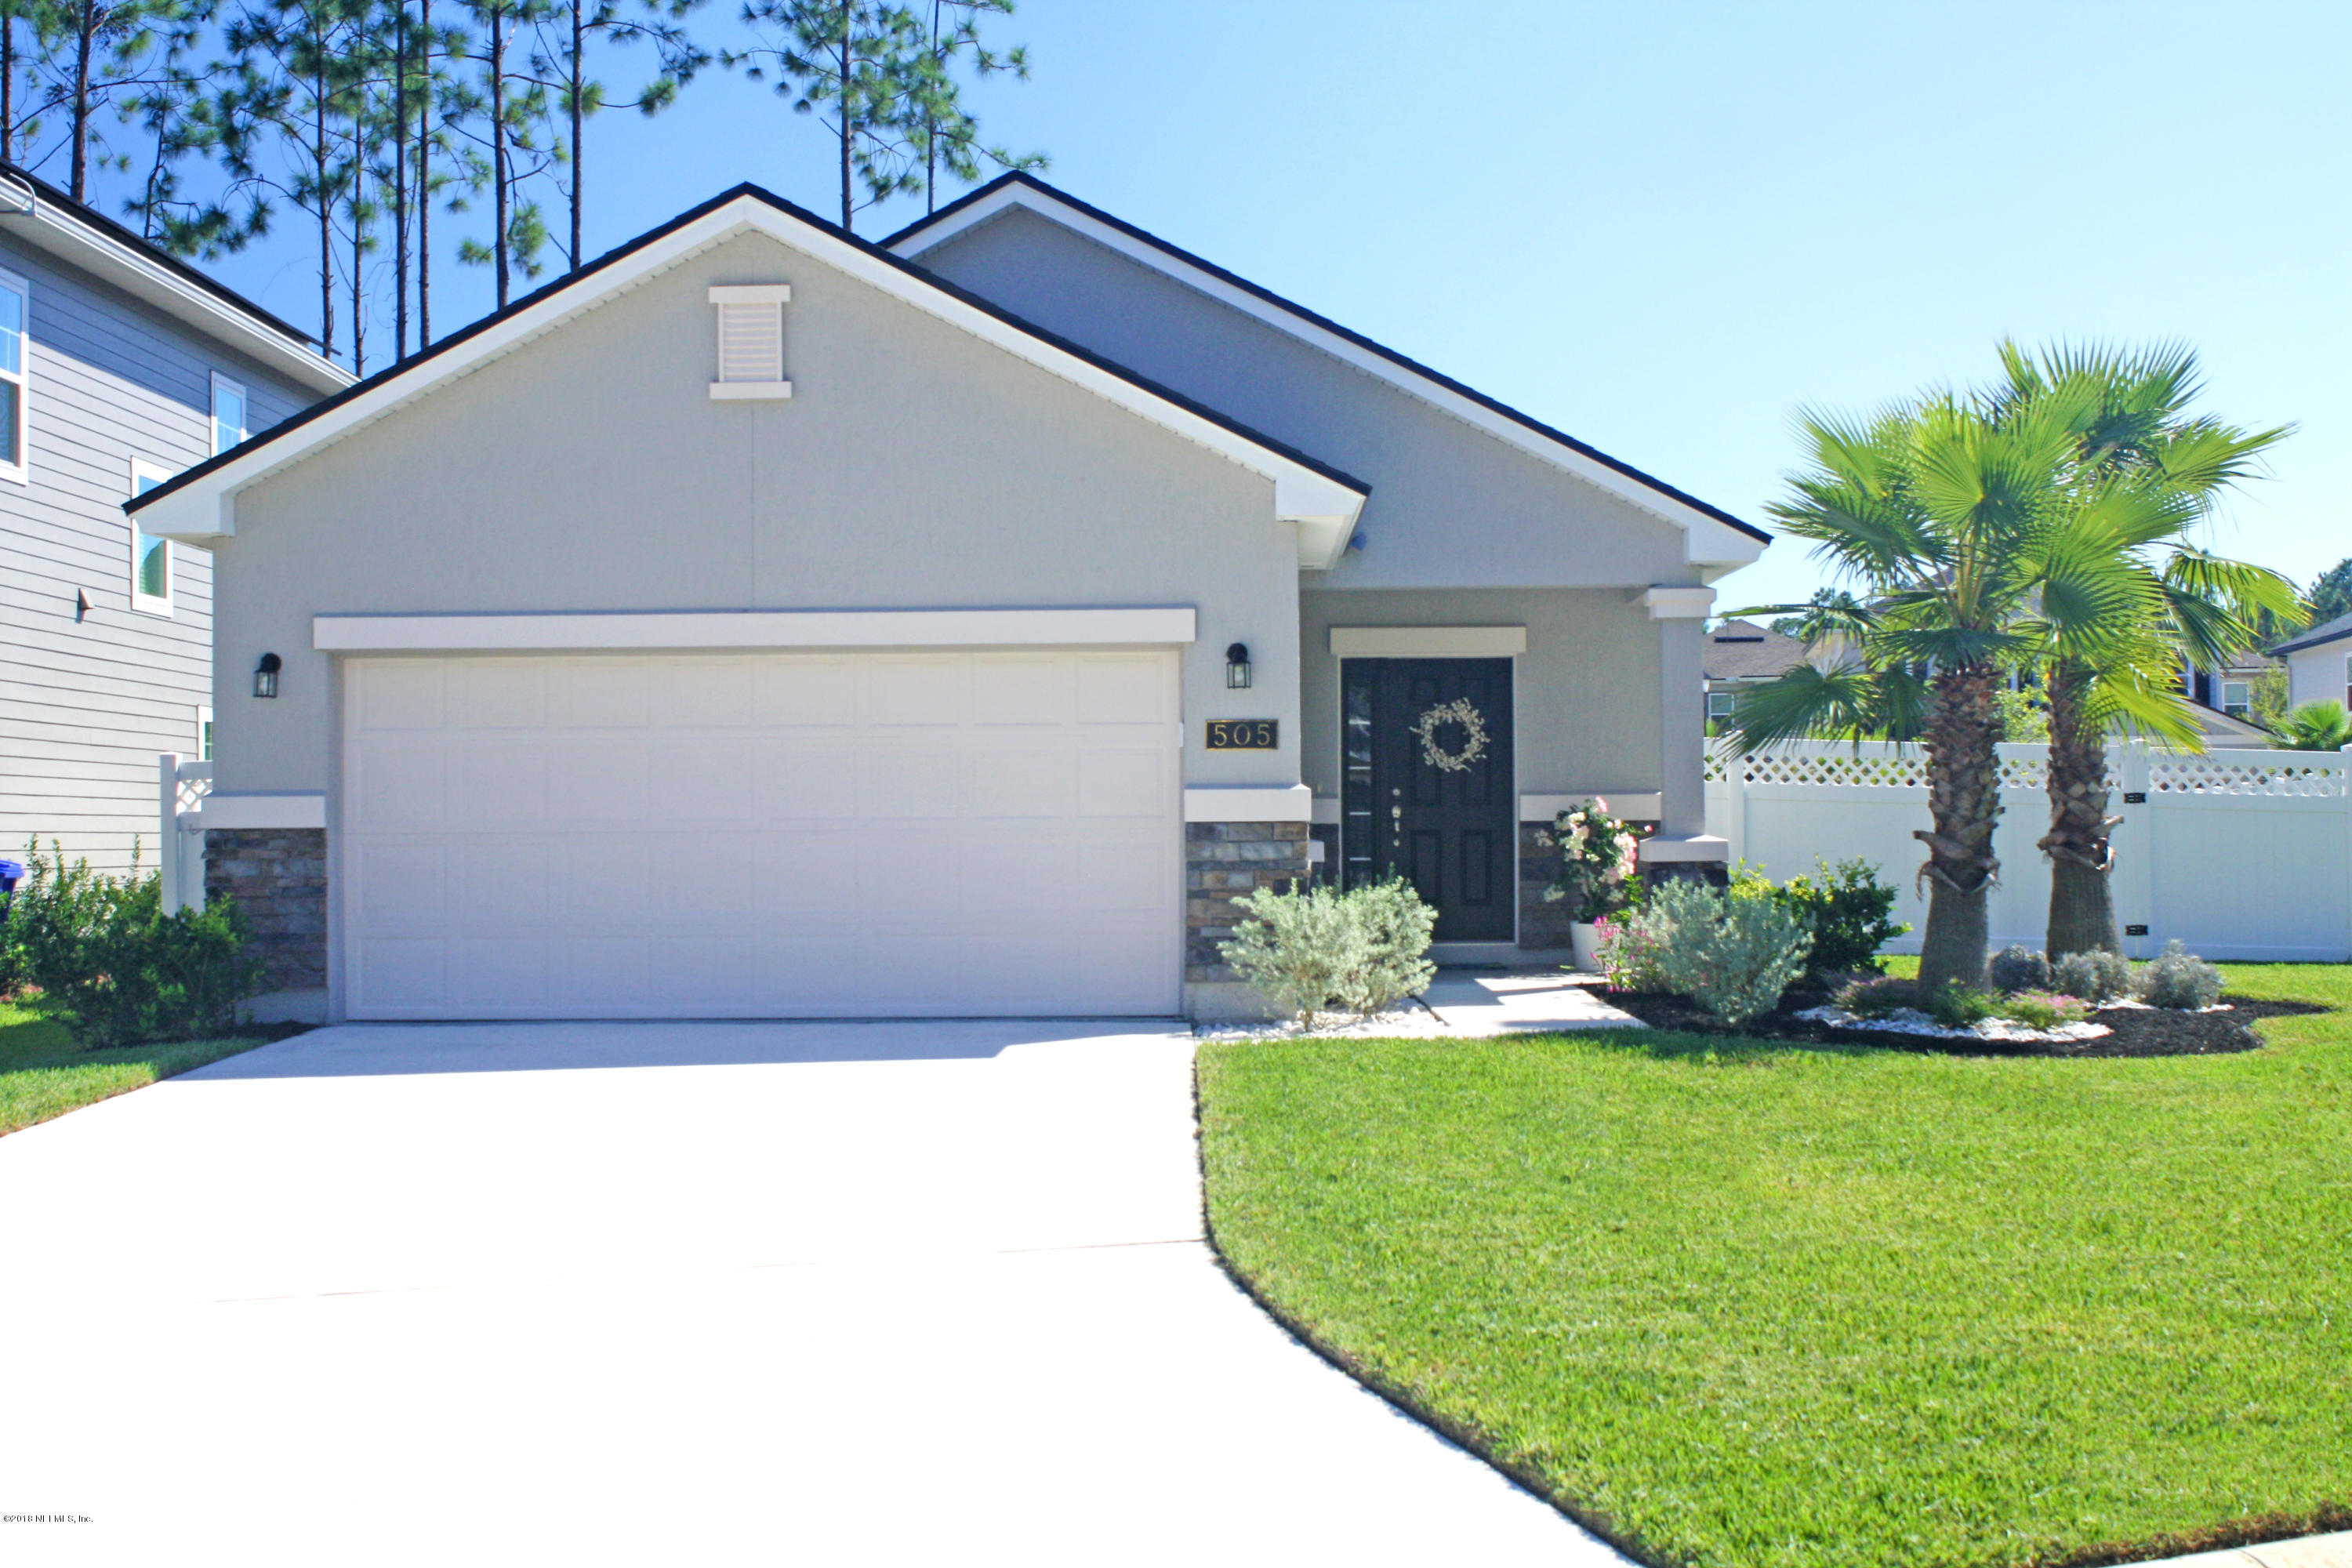 505 HERON LANDING, ST JOHNS, FLORIDA 32259, 3 Bedrooms Bedrooms, ,2 BathroomsBathrooms,Residential - single family,For sale,HERON LANDING,962349